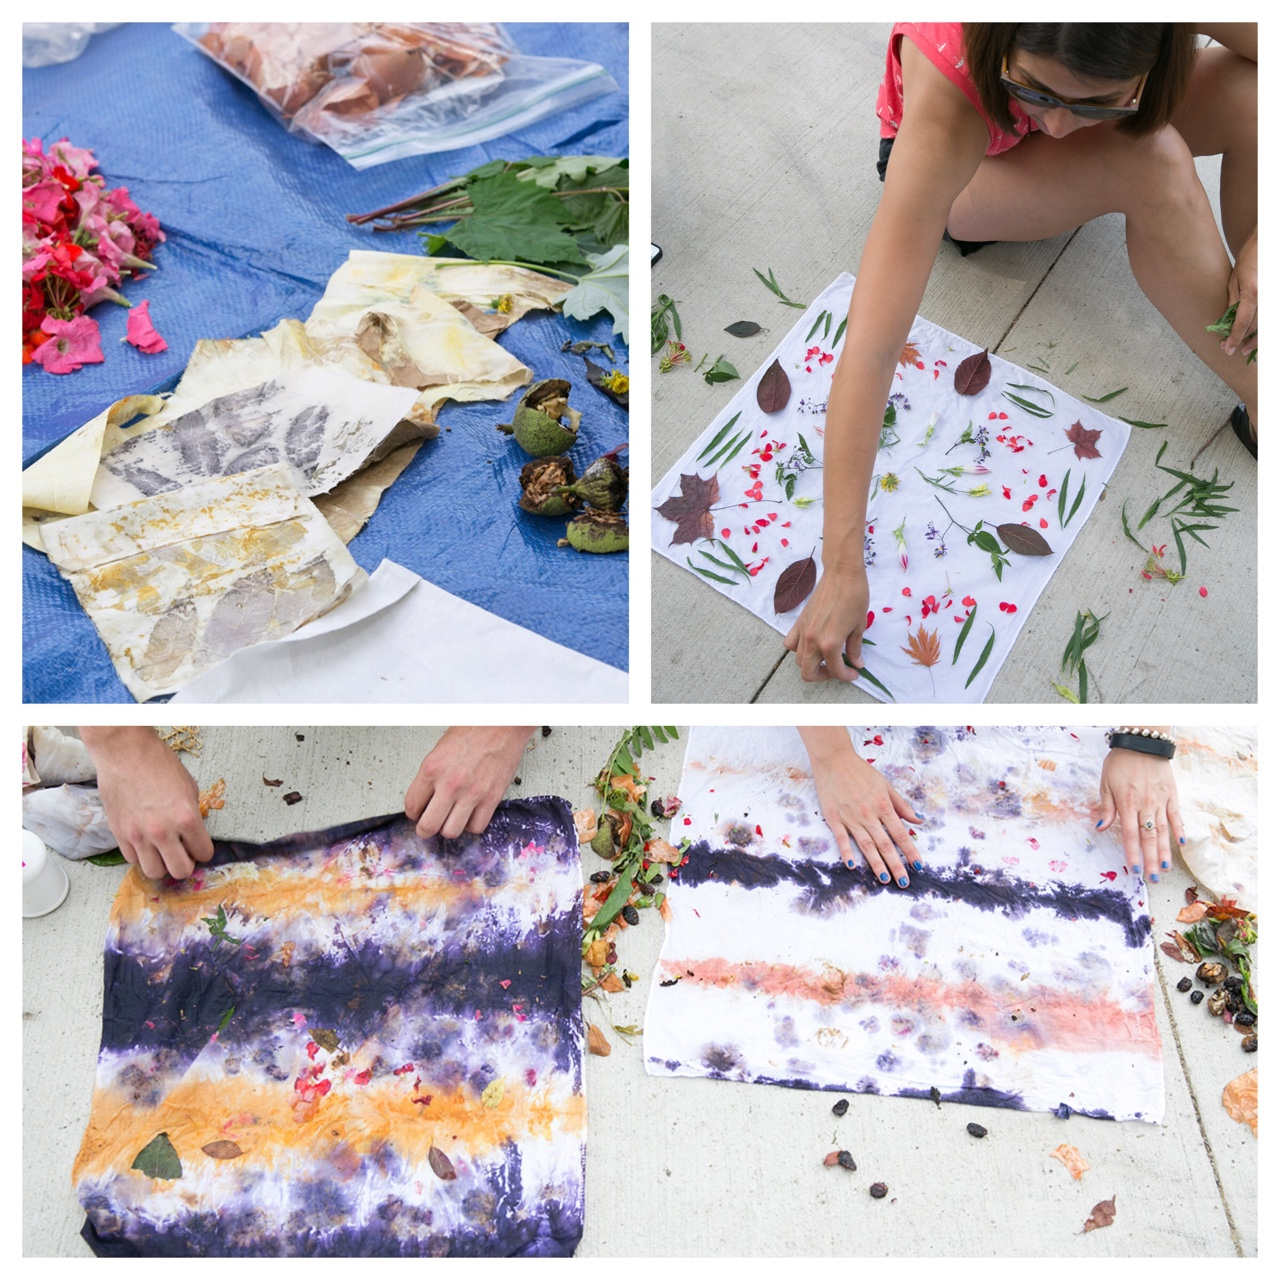 Photos from the Natural Dye Workshop at Julia De Burgos Park with Marianne Fairbanks and Gallery 400 Summer 2015. Images by Nancy Behall for ©Clare Britt Photo